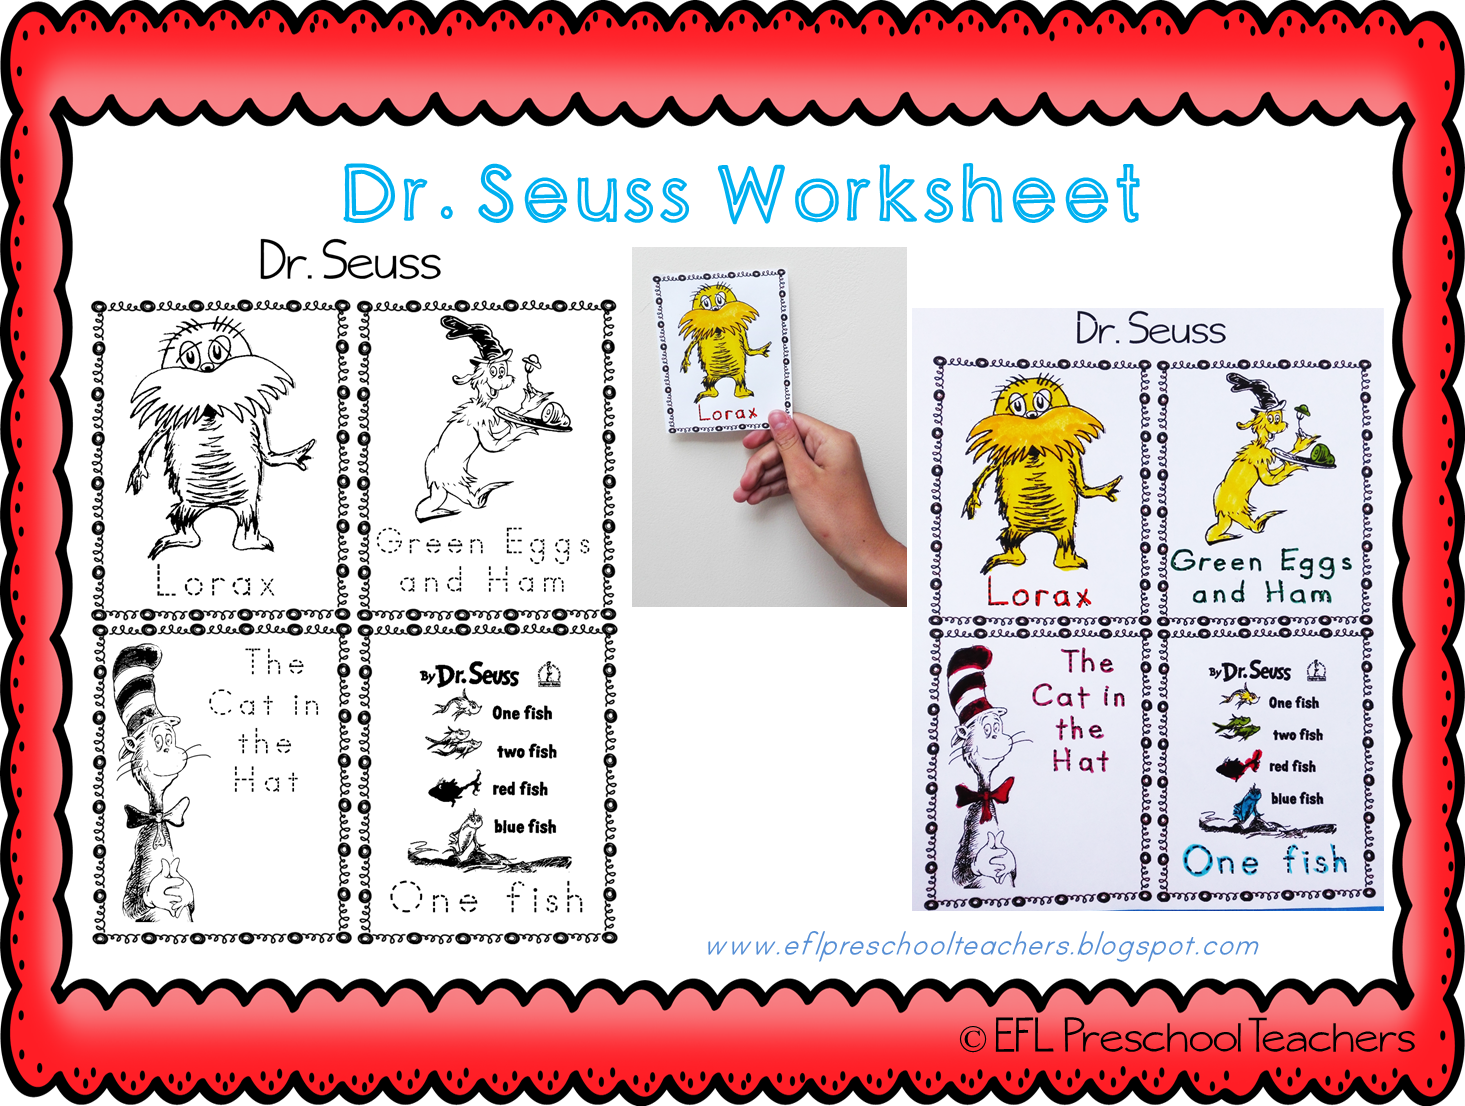 ESL/EFL Preschool Teachers: Dr. Seuss worksheets for ELL